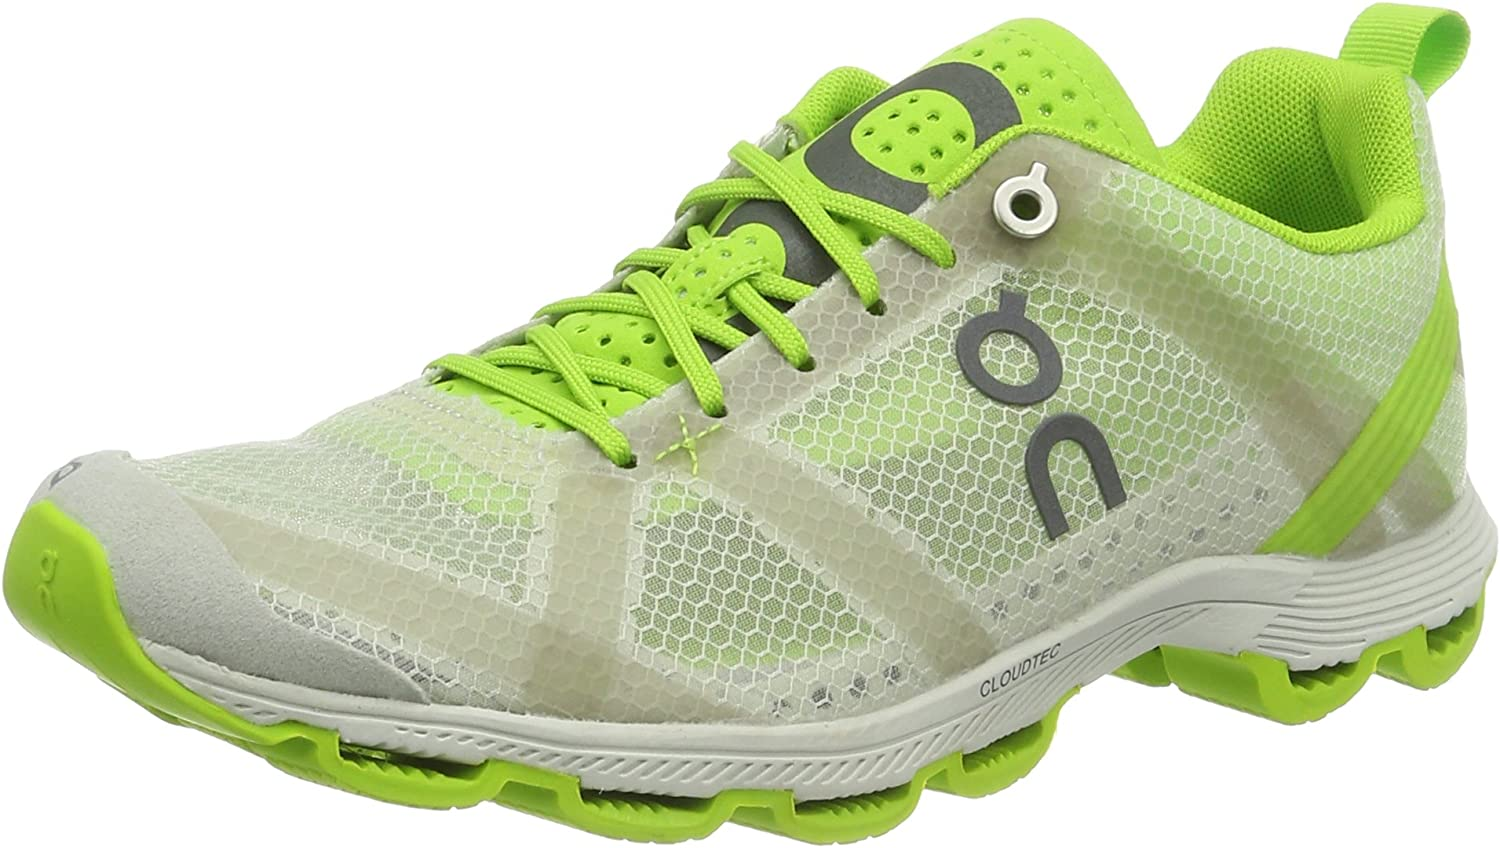 On Running Women's, Cloudracer Running shoes SILVER LIME 10.5 B